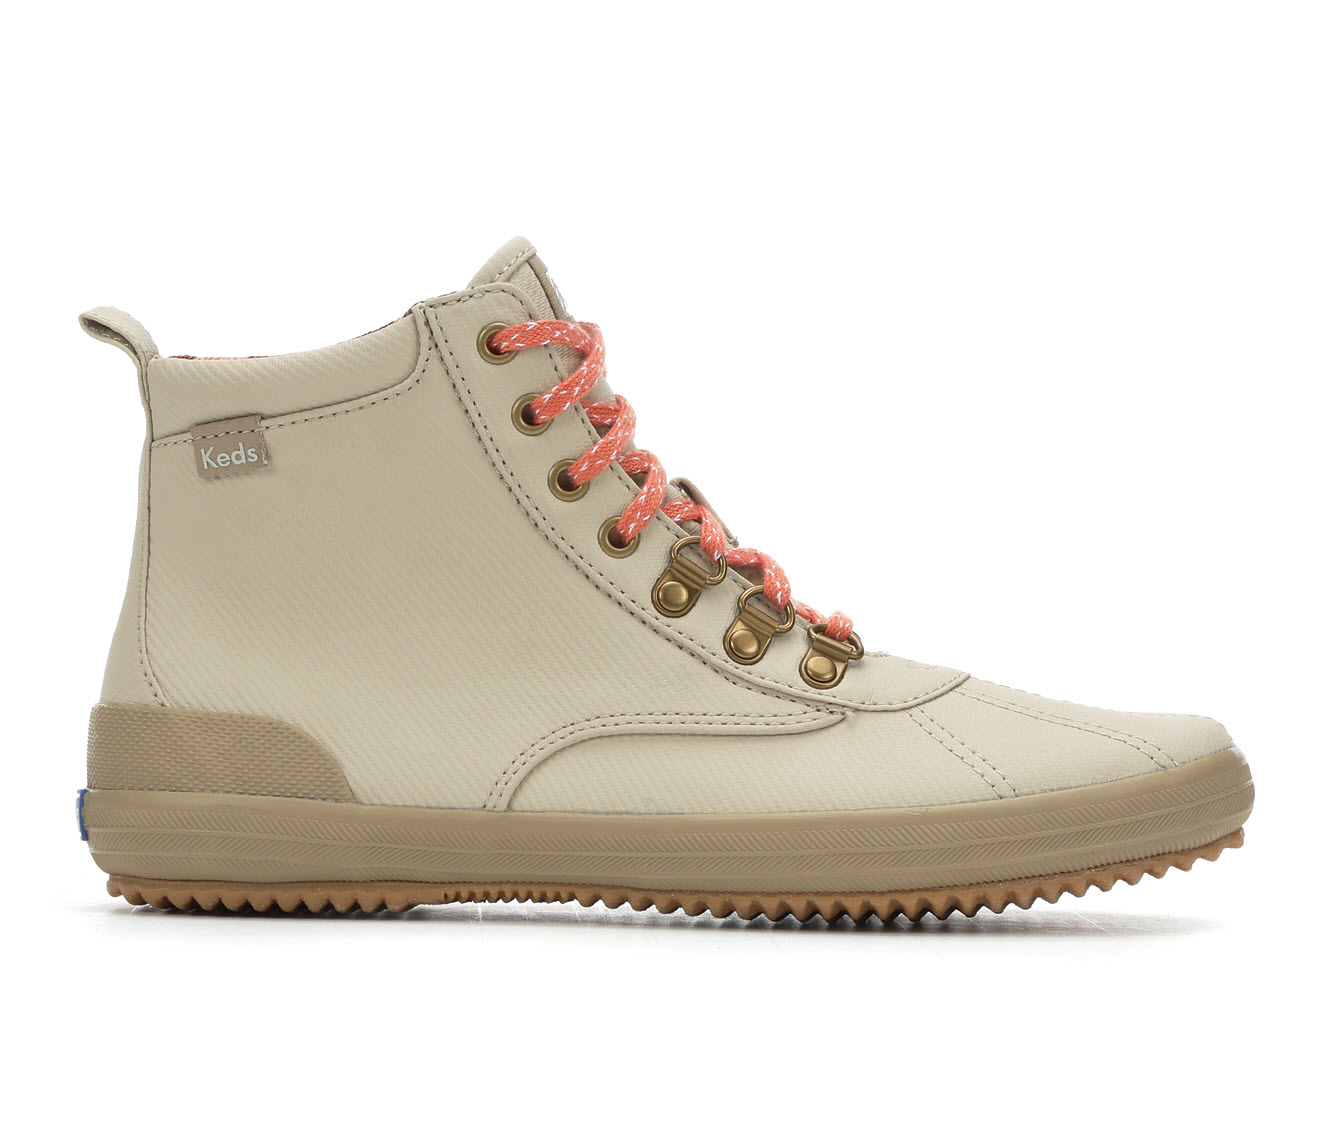 Keds Scout Boot II Women's Shoe (Beige Canvas)